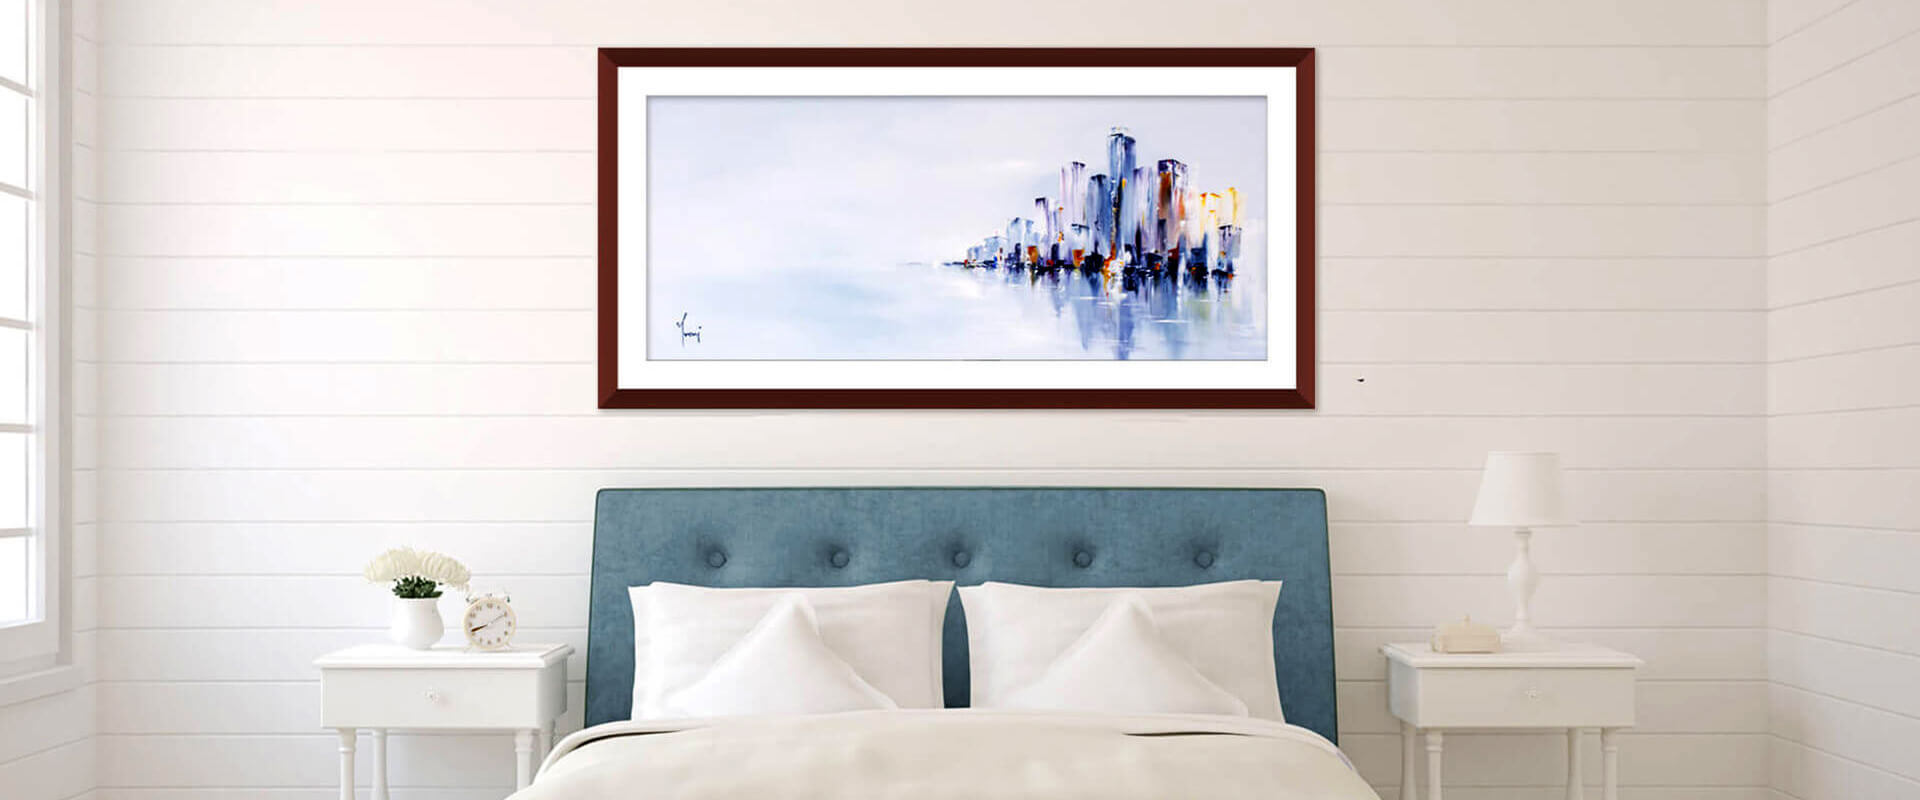 Large & Oversized Art Prints | Buy Posters, Frames, Canvas, Digital Art & Large Size Prints